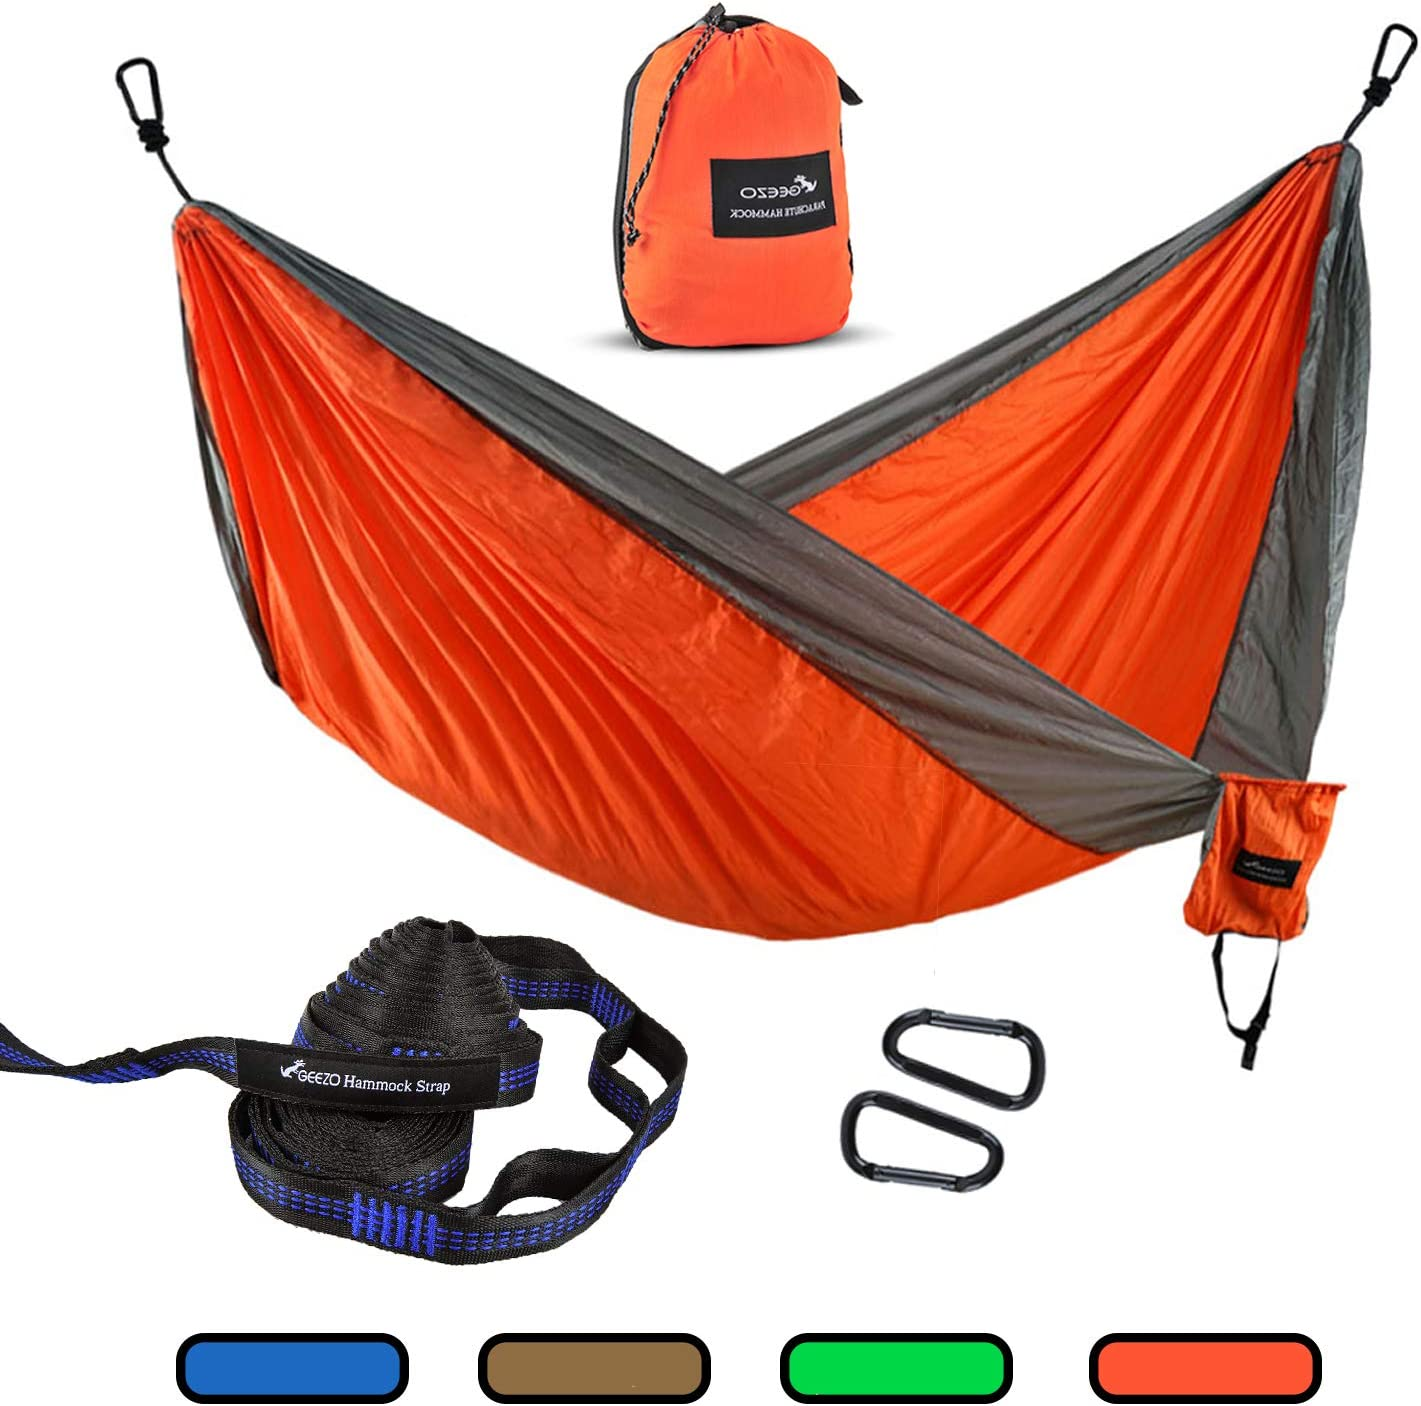 Geezo Double Camping Hammock, Lightweight Portable Parachute 2 Tree Straps 16 LOOPS 10 FT Included 500lbs Capacity Hammock for Backpacking, Camping, Travel, Beach, Garden